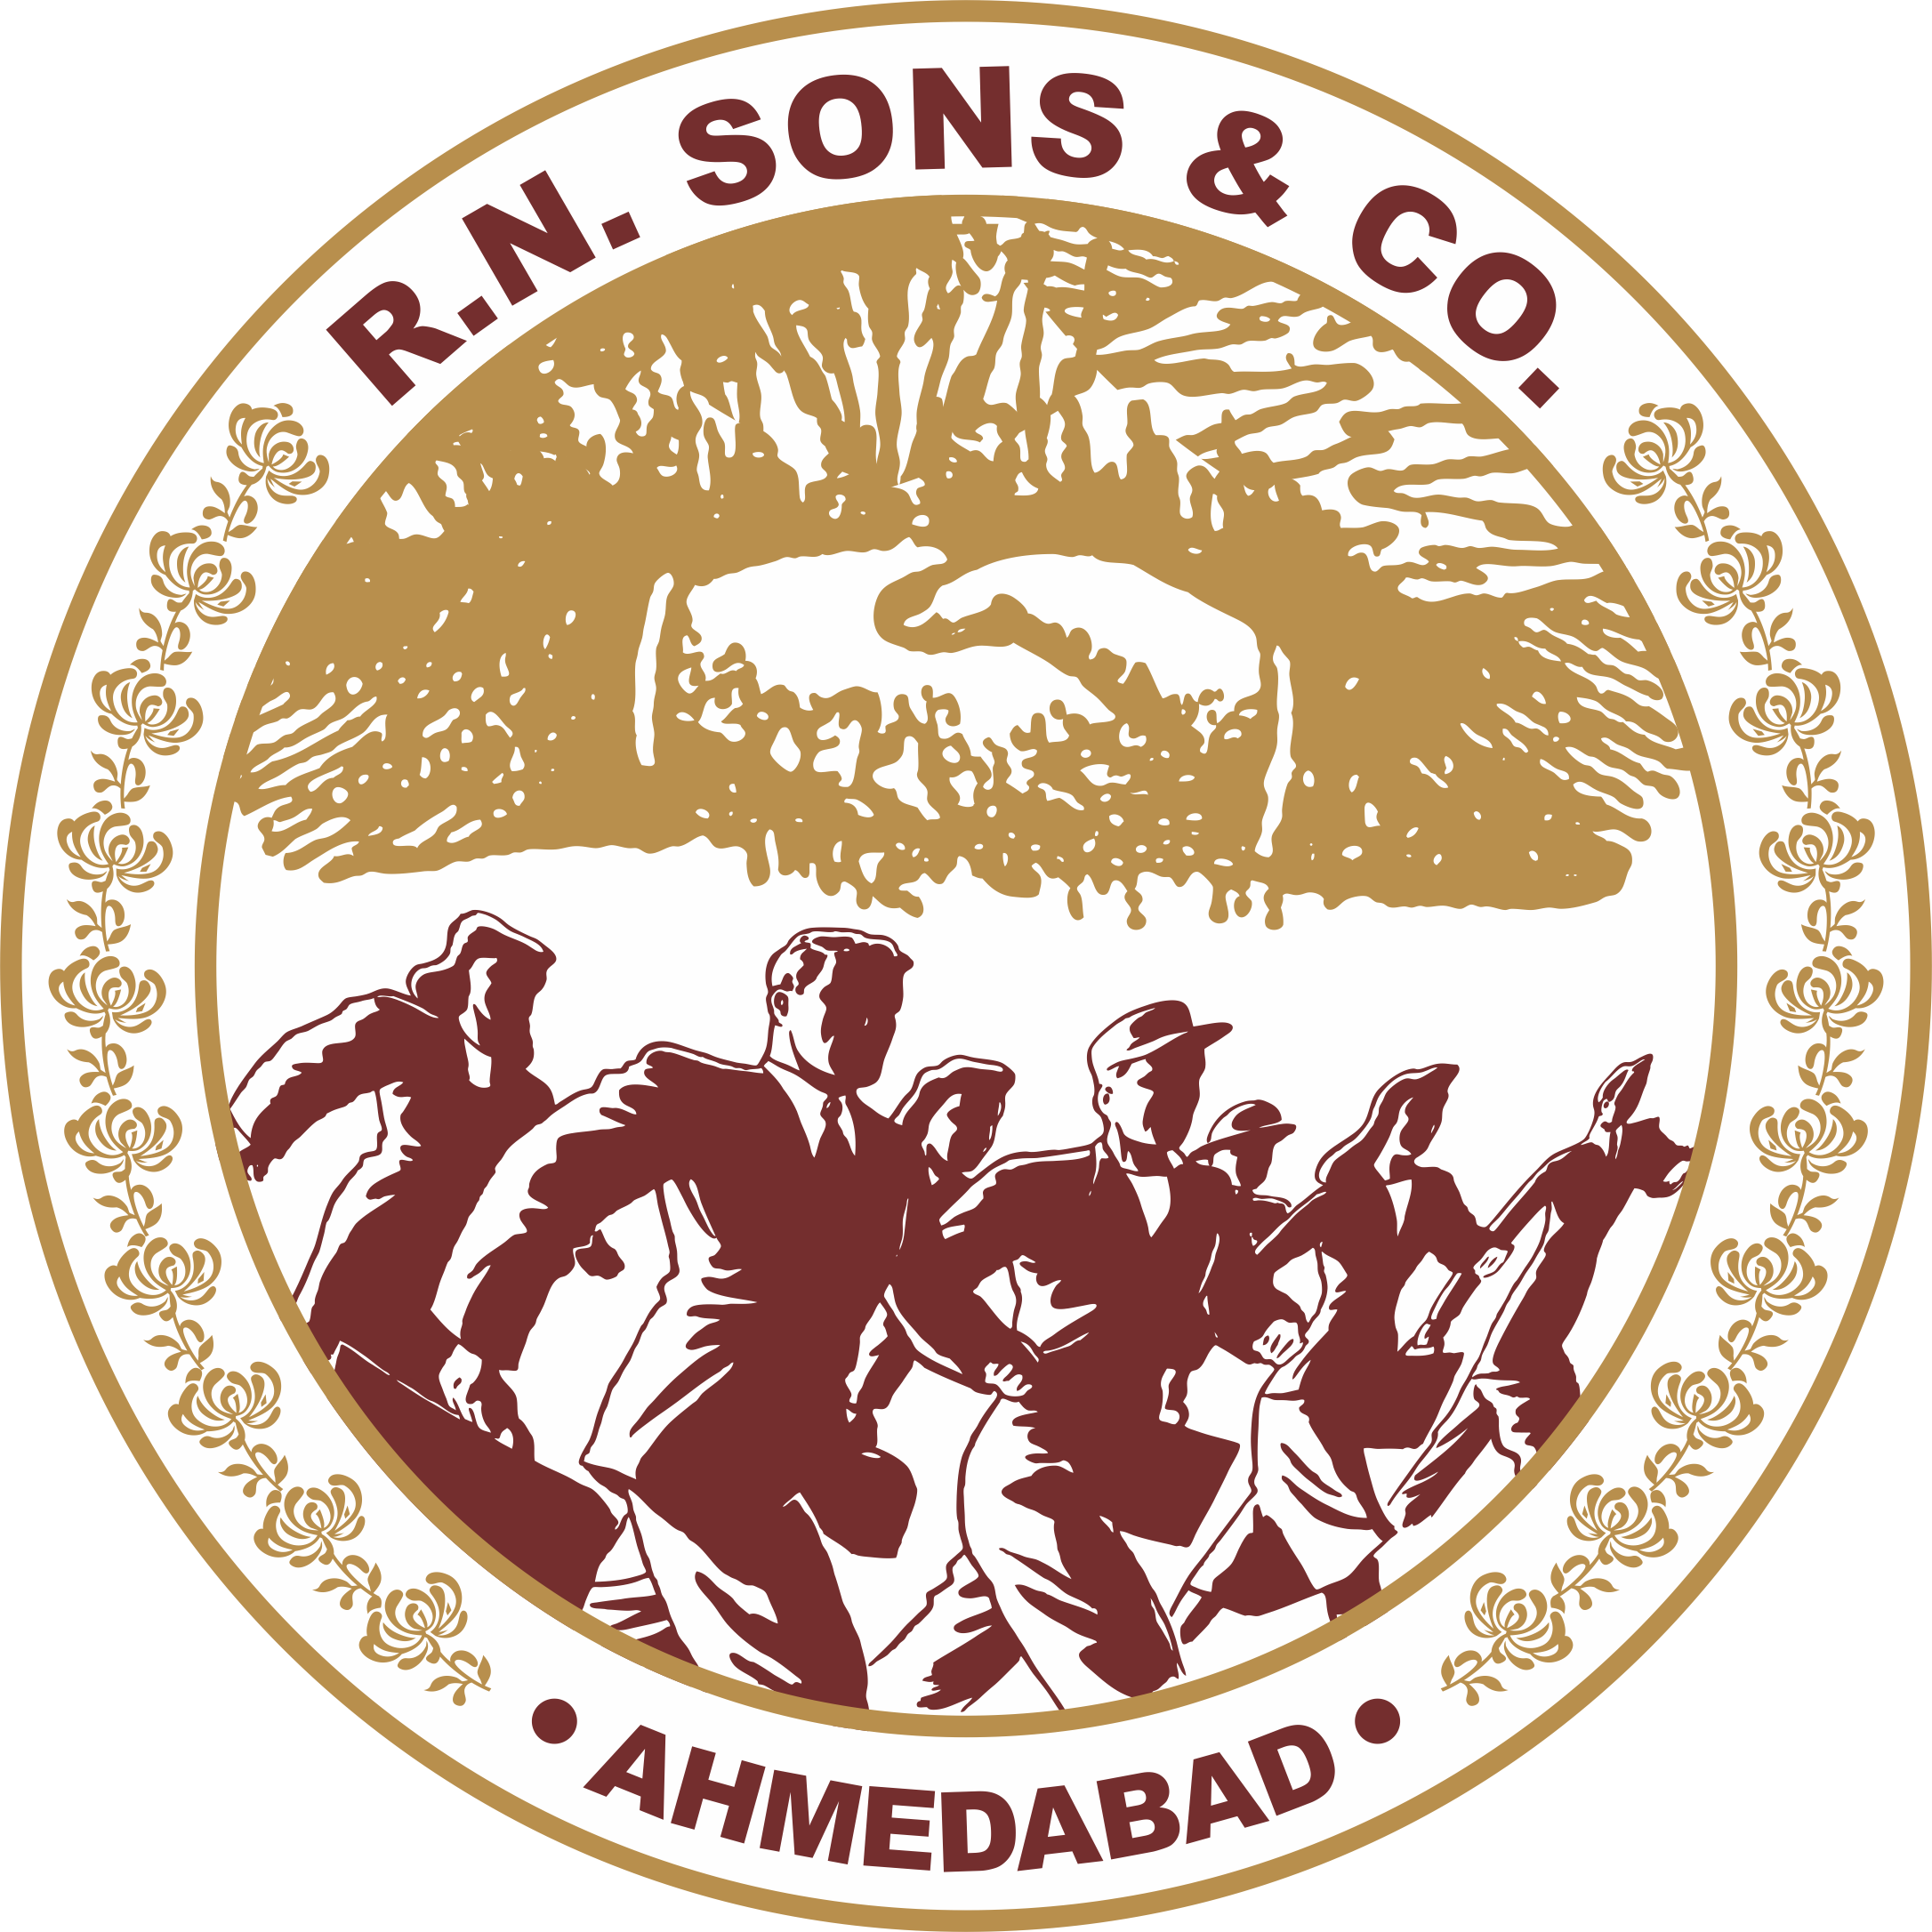 R. N. Sons & Co.